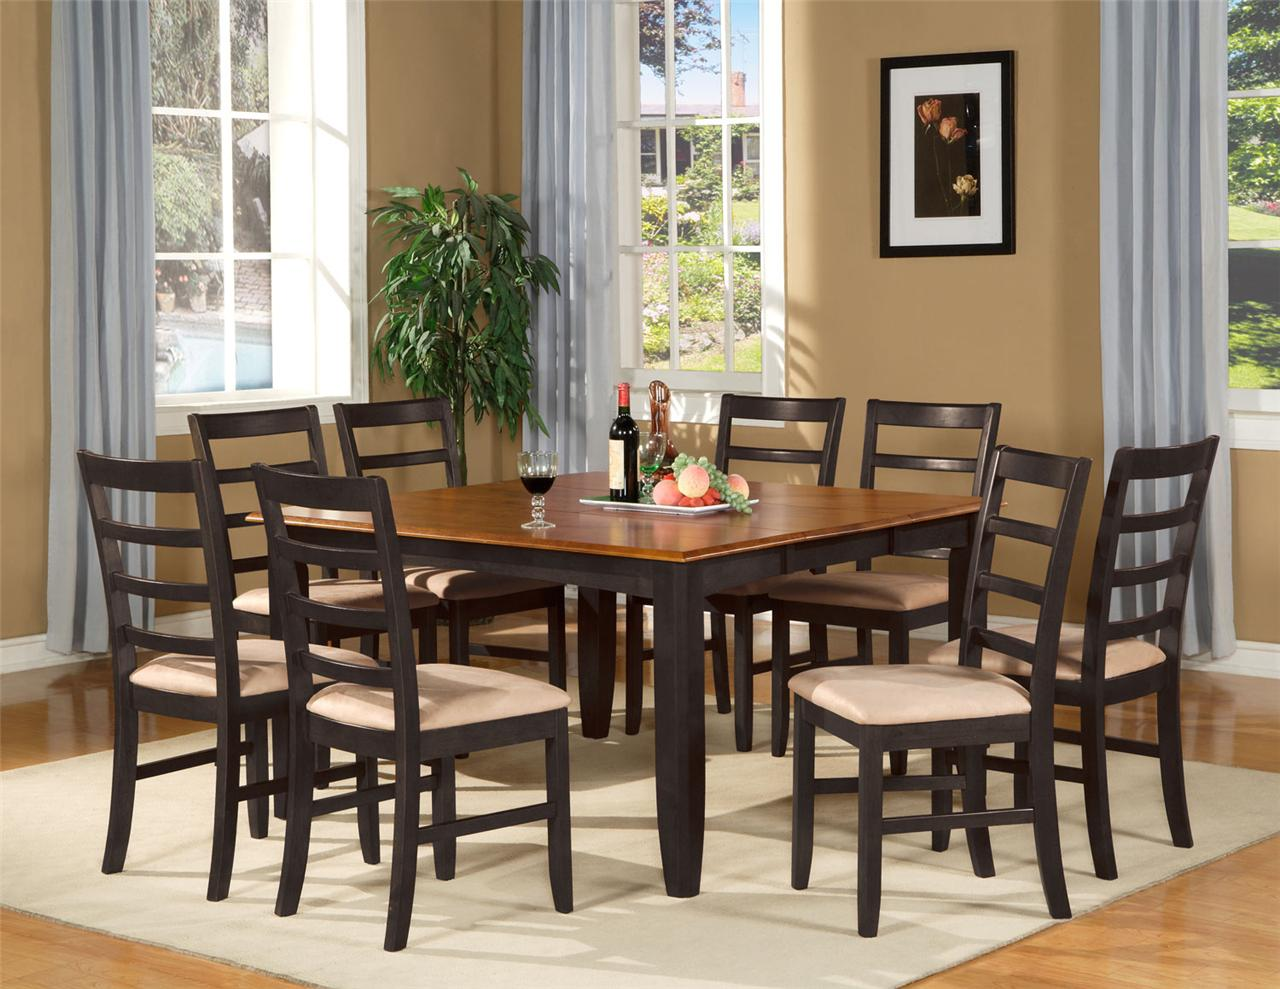 7 PC SQUARE DINETTE KITCHEN DINING TABLE SET 6 CHAIRS EBay